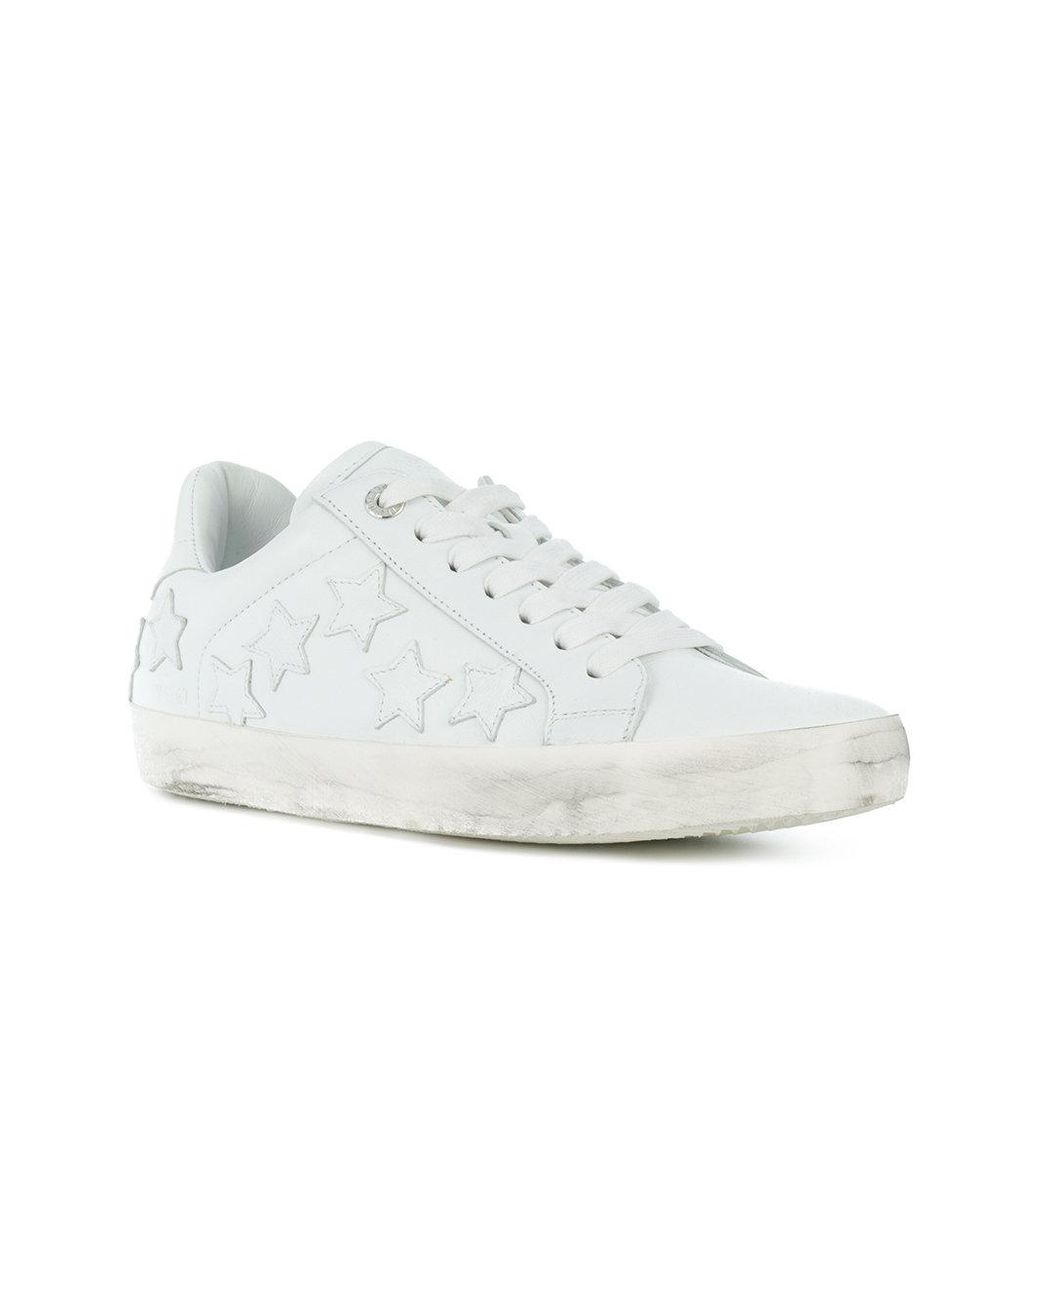 Women's Sneakers Women's White Star Patches ordBCxeW